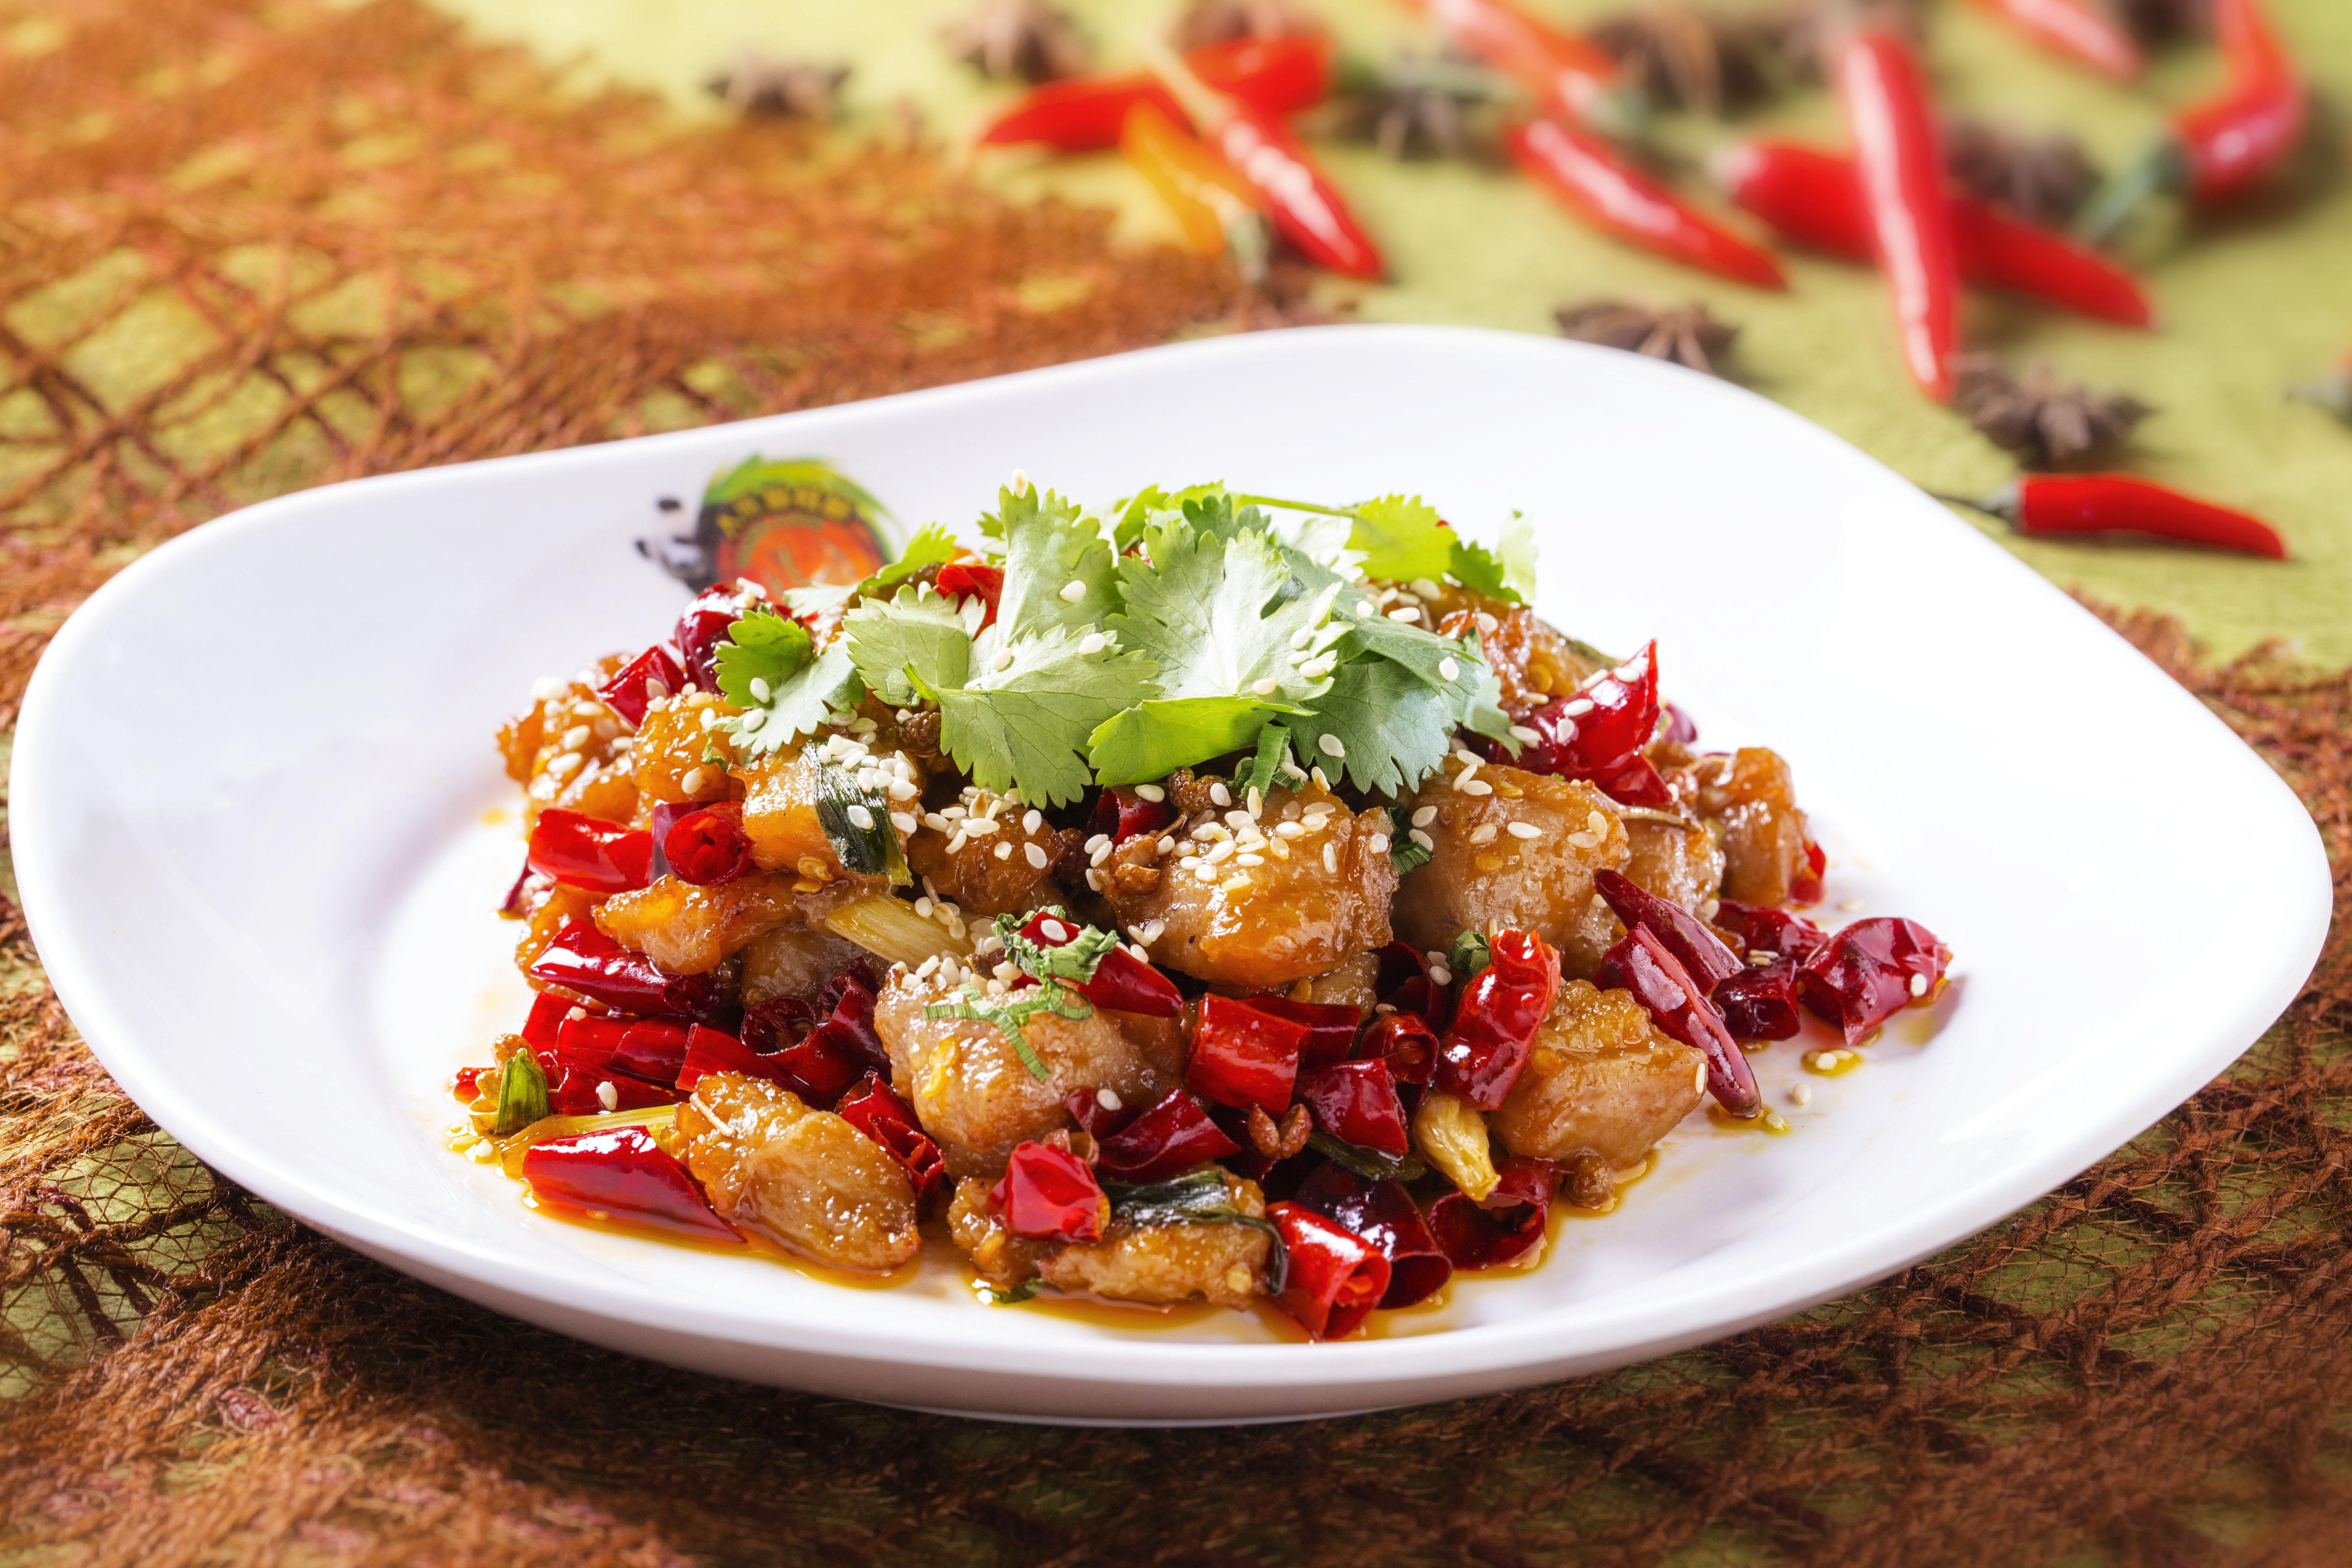 Sauteed Diced Chicken with Chili and Pepper in Sichuan Style